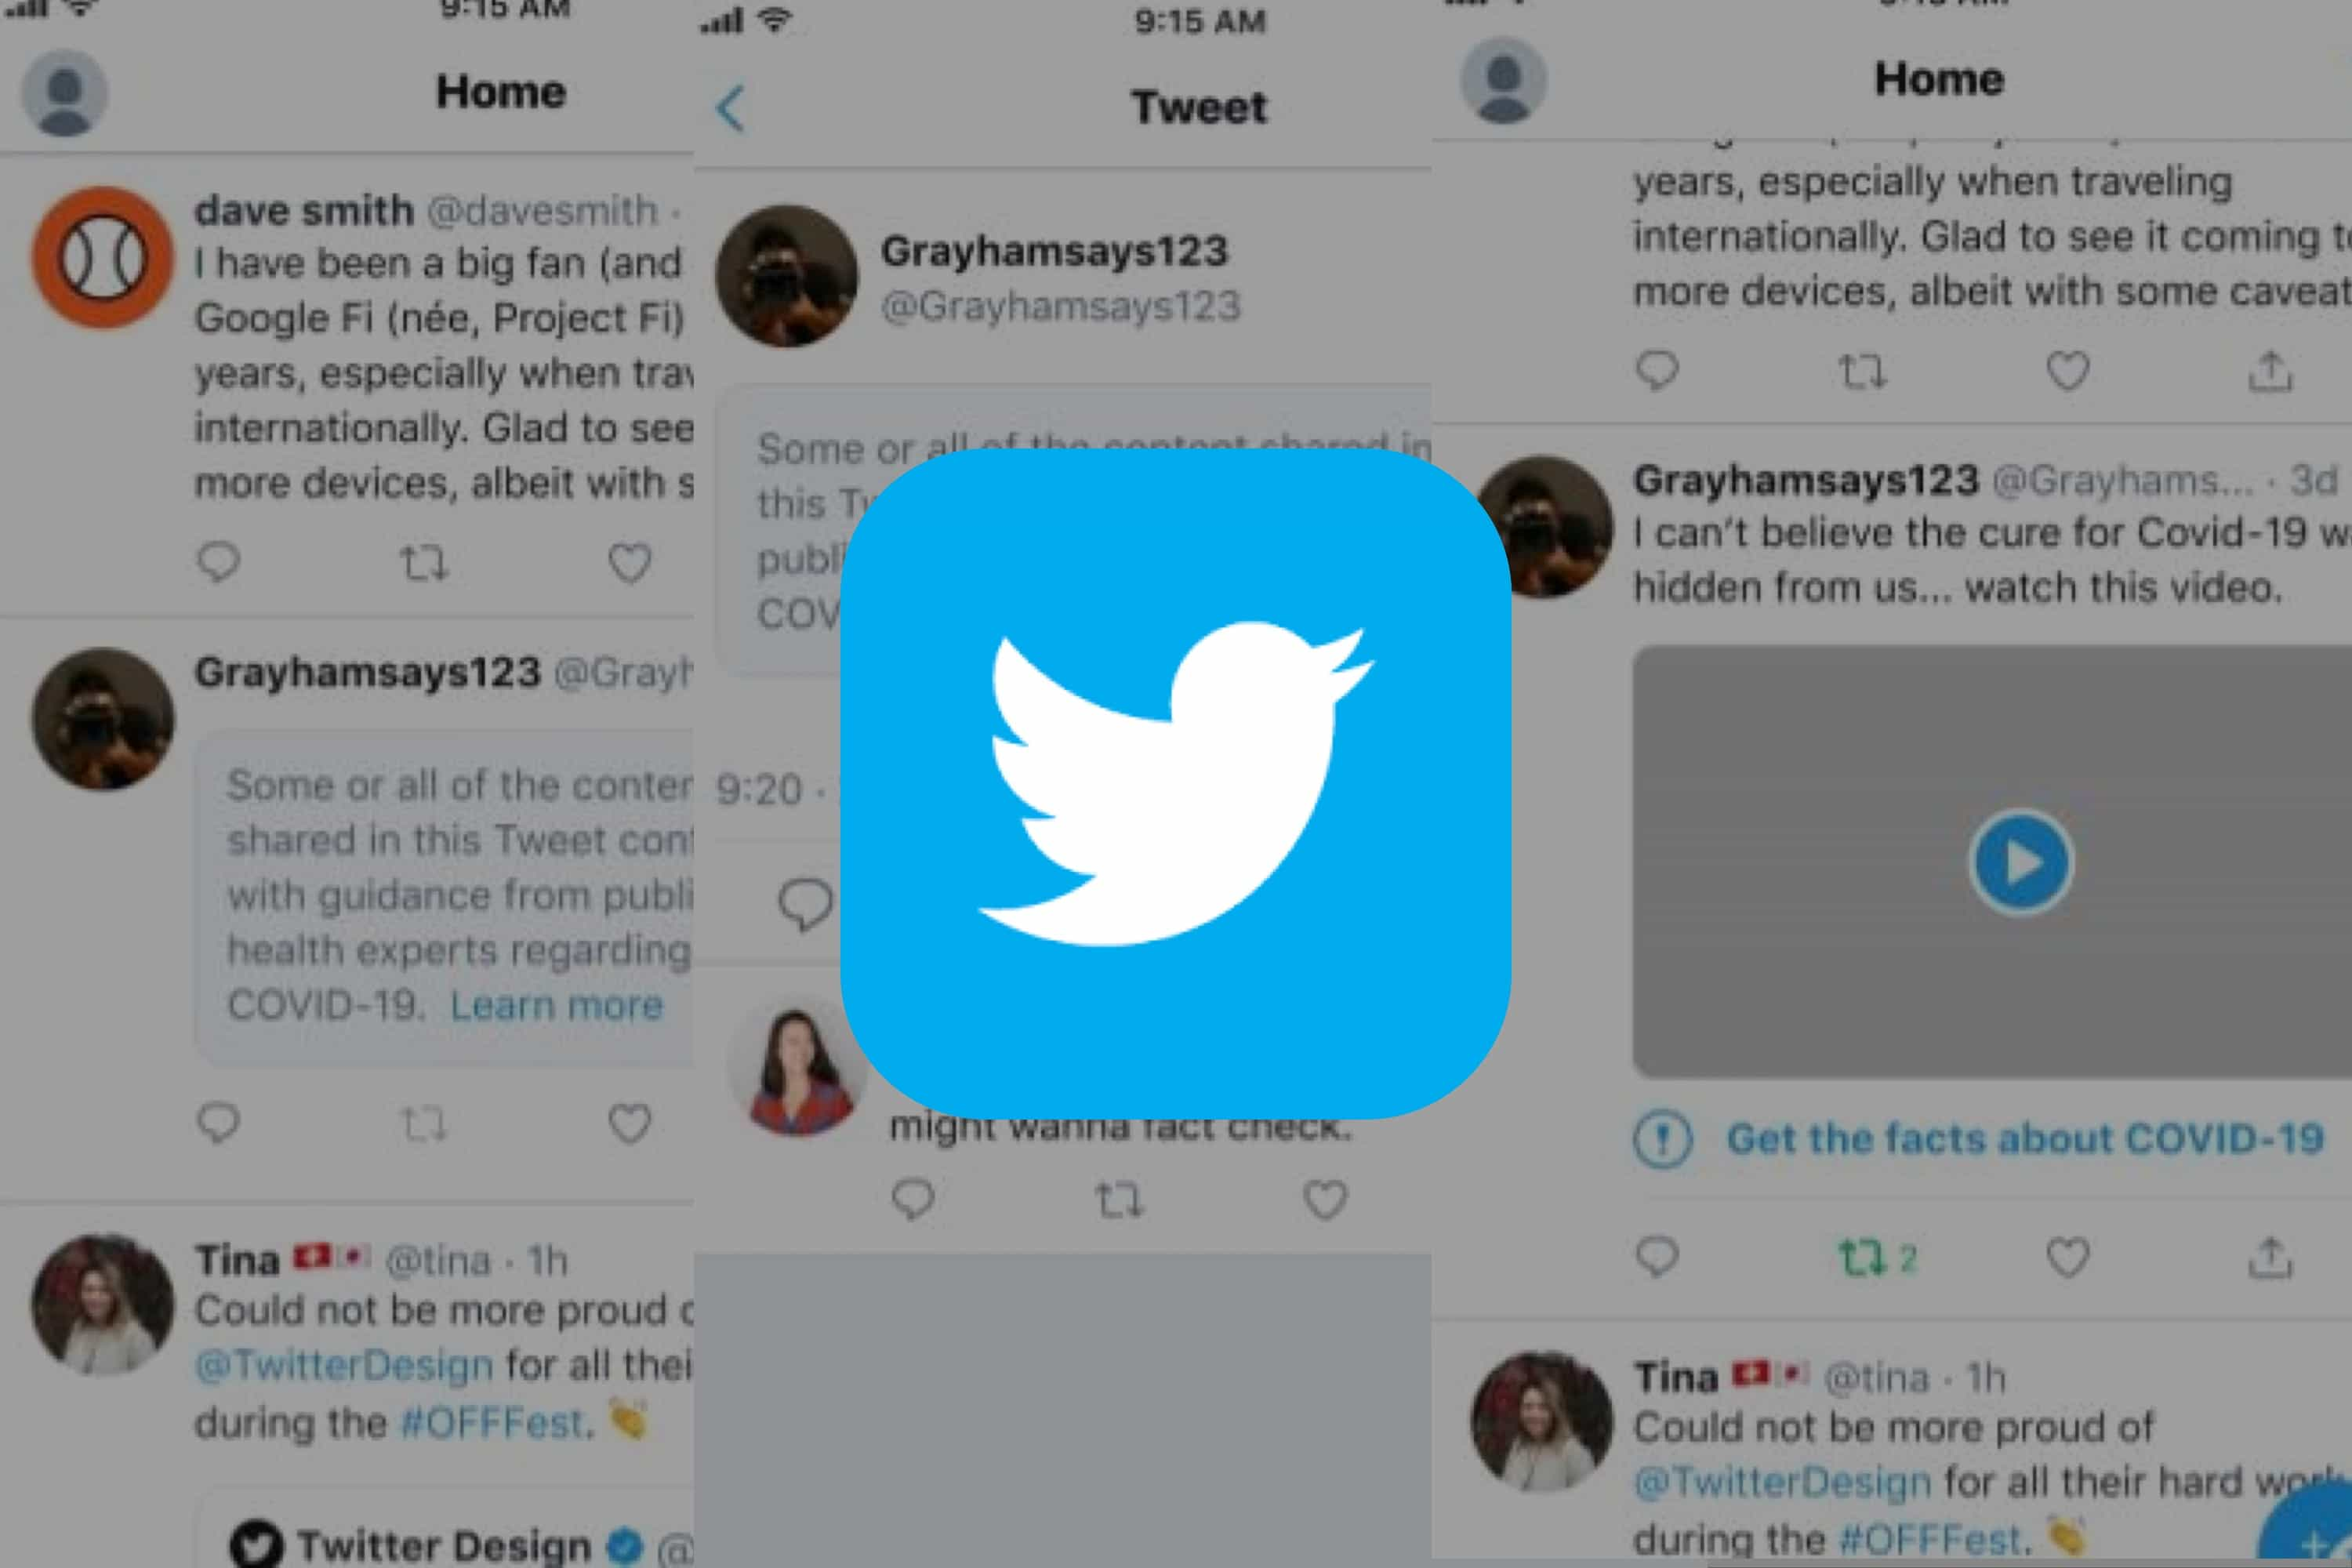 twitter-warns-users-about-misleading-tweets-in-new-update-20201124-1